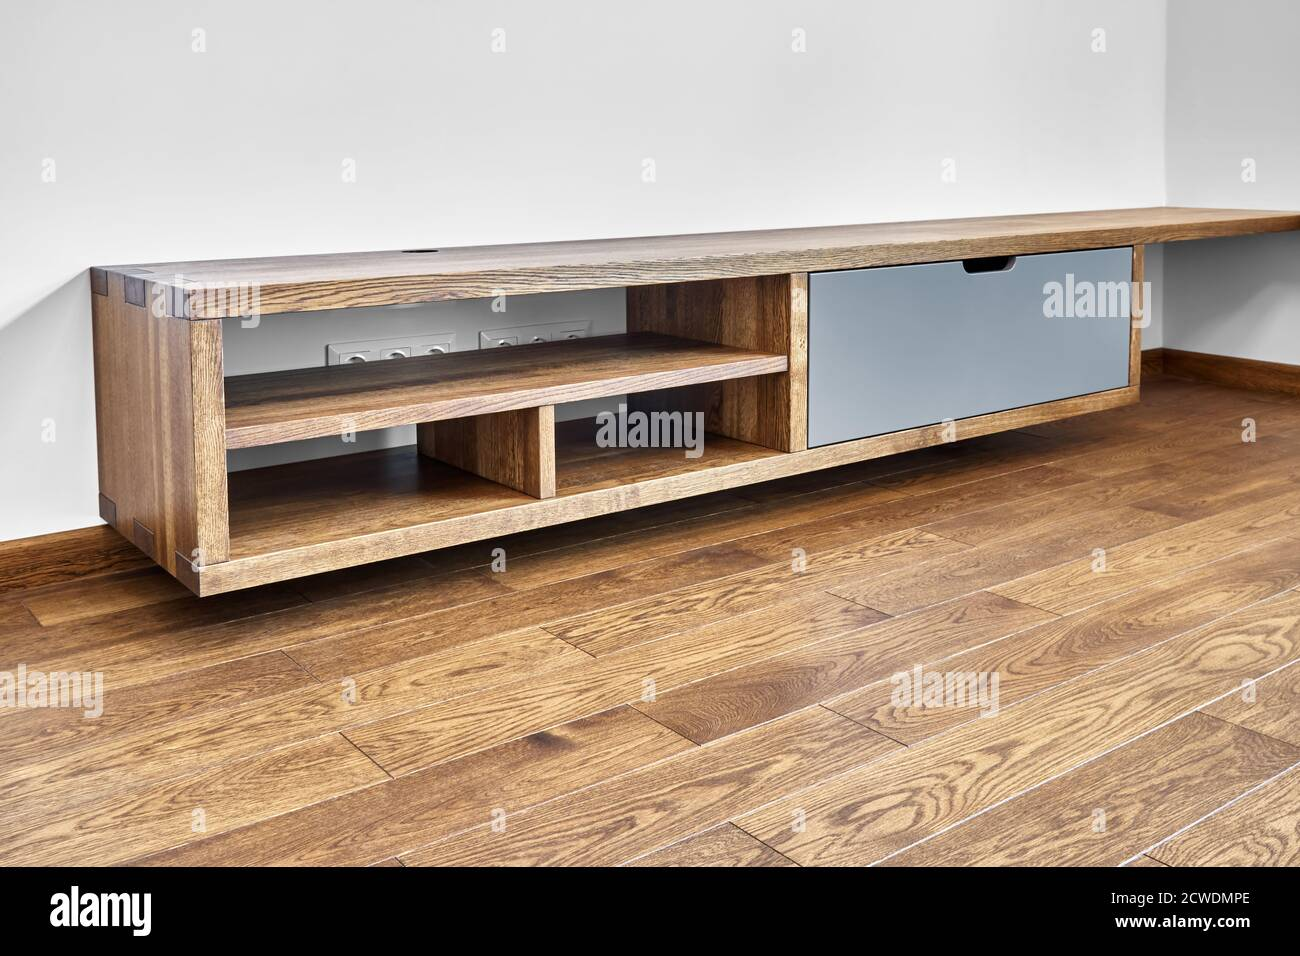 Modern Furniture Wall Mounted Media Cabinet Box Joint Media Cabinet In Living Room Stock Photo Alamy